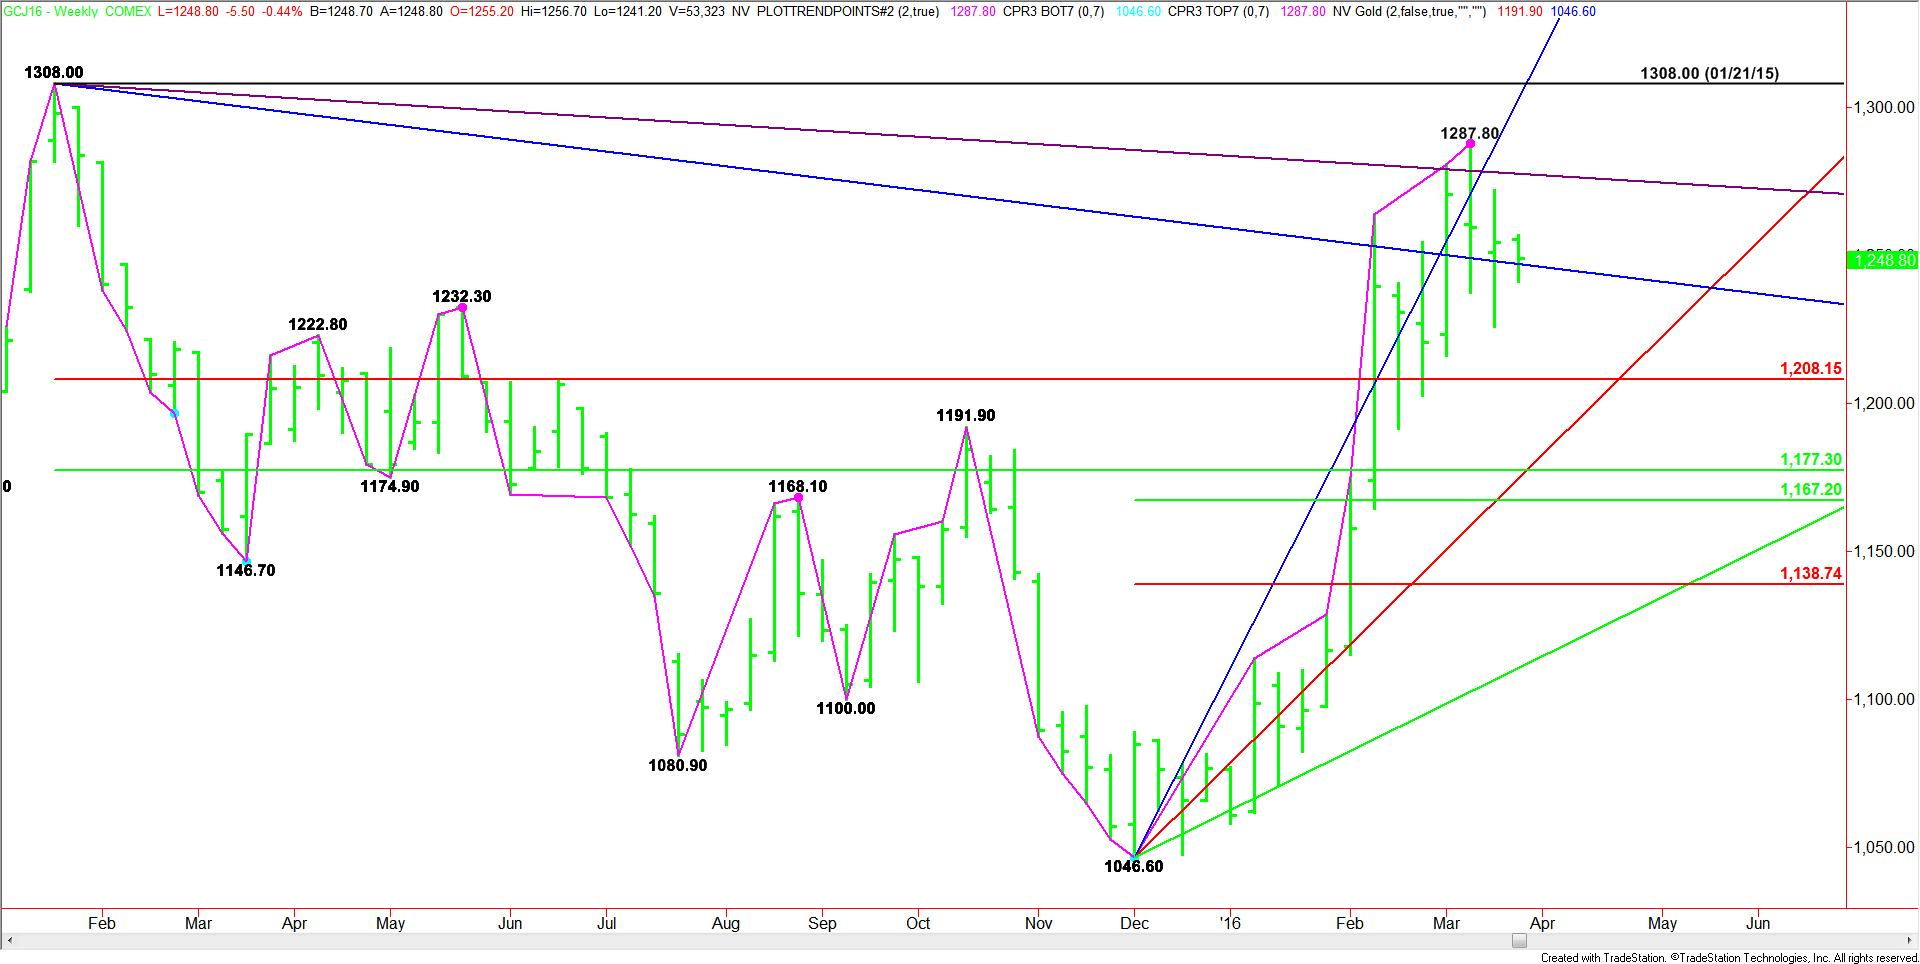 Weekly April Comex Gold